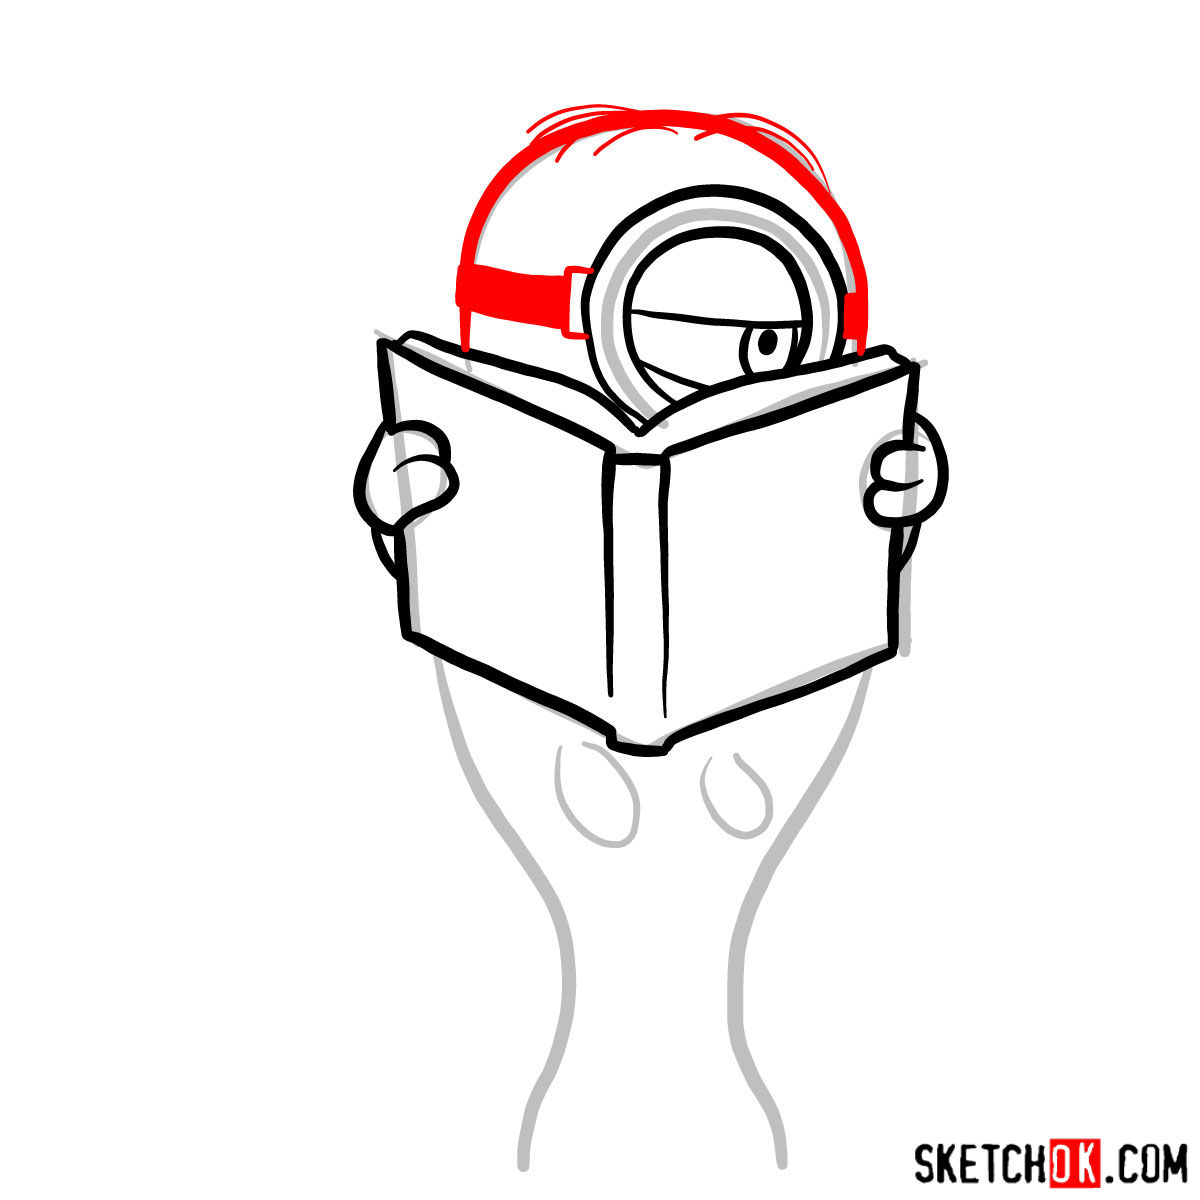 How to draw minion in the toilet reading a book - step 05